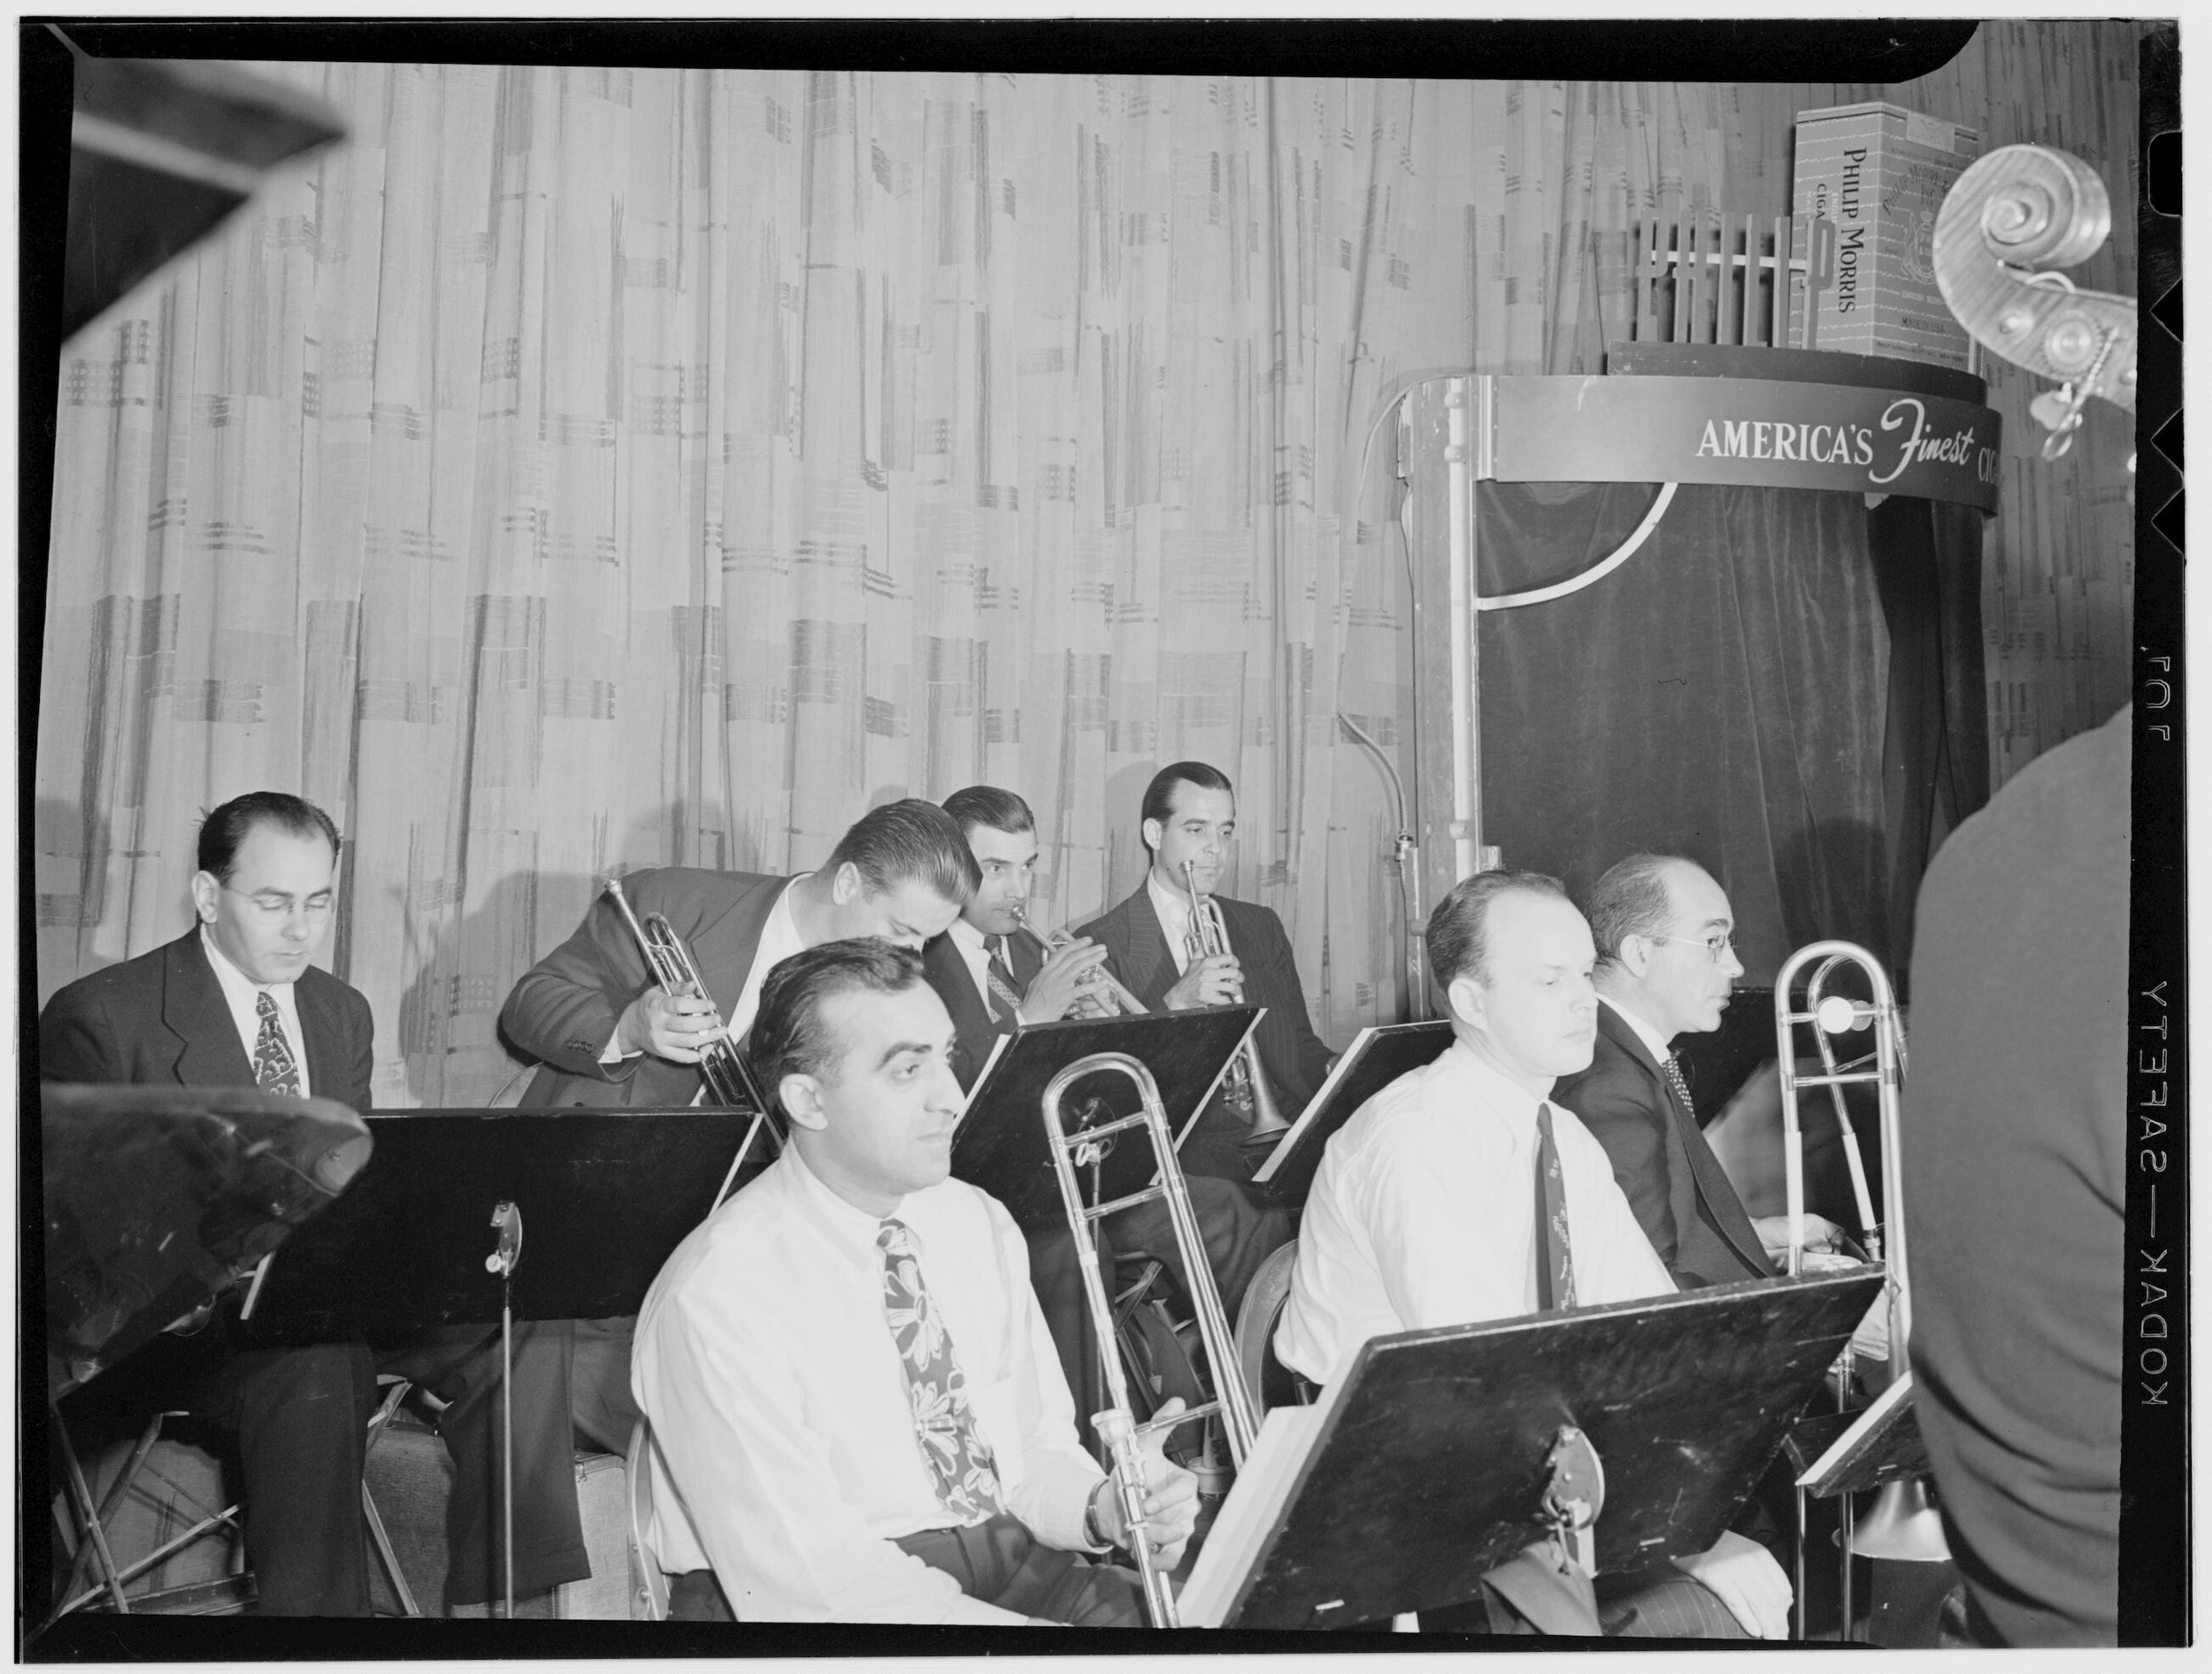 Glenn Miller Orchestra, New York, N.Y., between 1938 and 1948.    William P. Gottlieb/Ira and Leonore S. Gershwin Fund Collection, Music Division, Library of Congress.